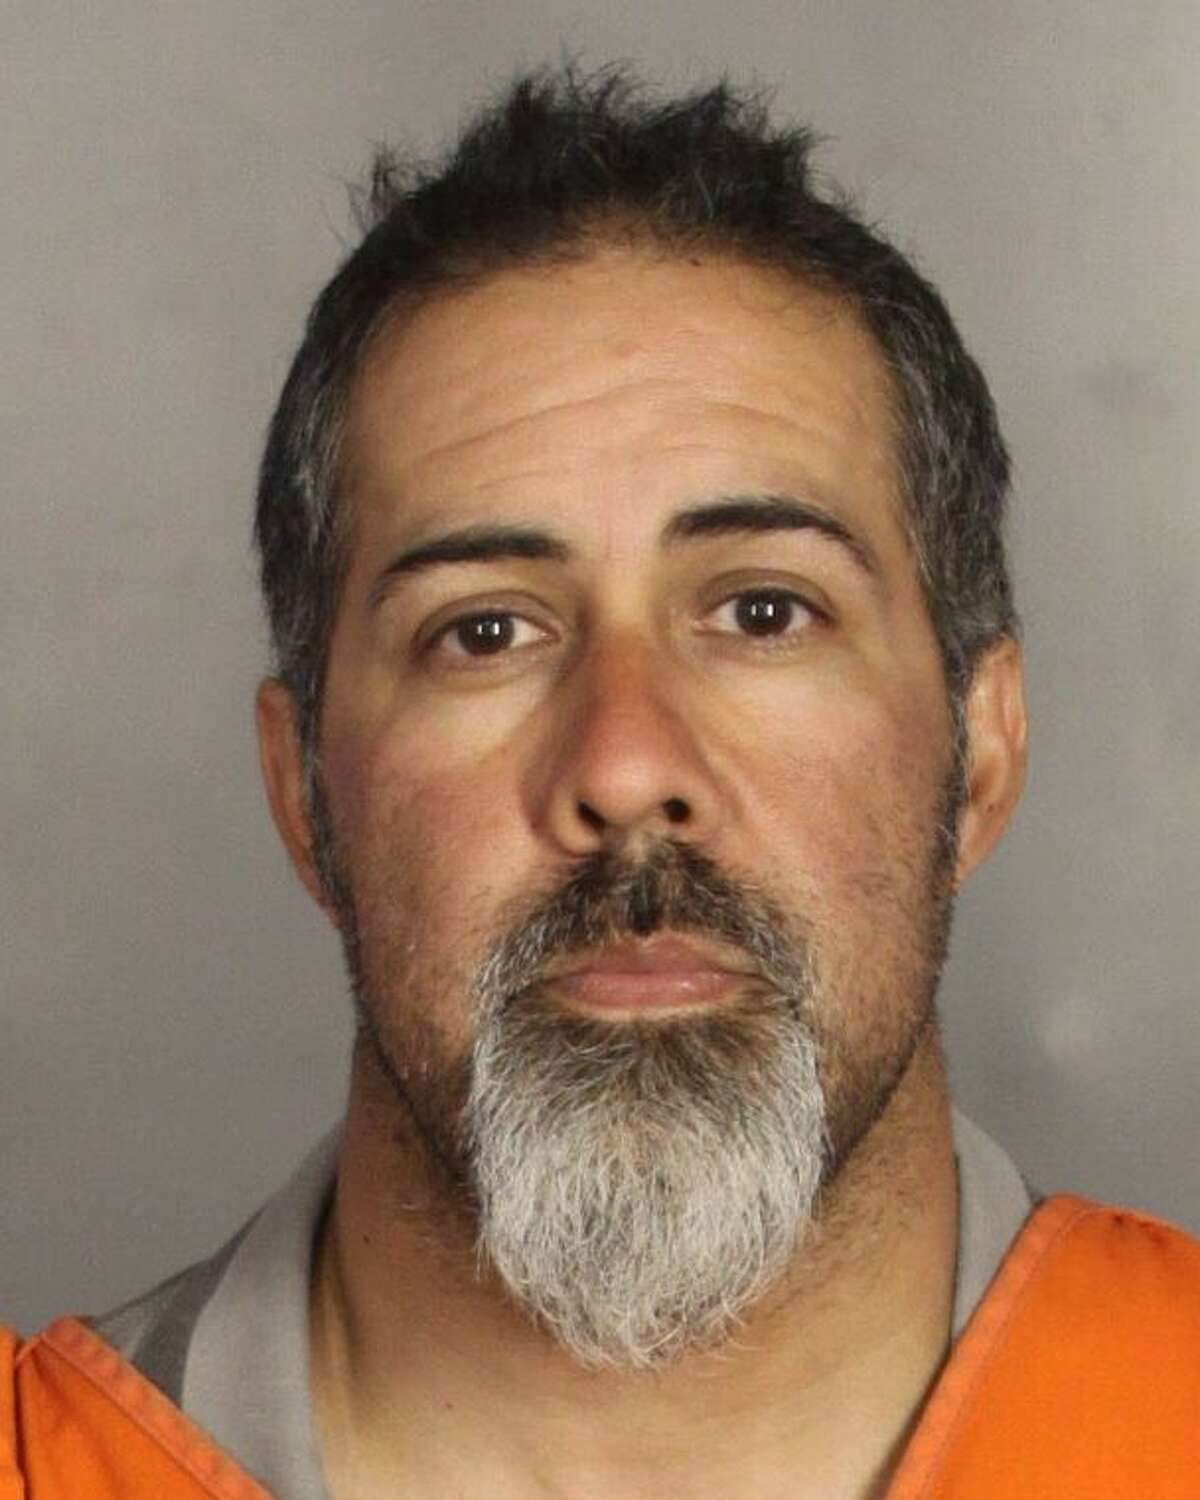 Juan Garcia, 40, was booked May 18, 2015, and charged with engaging in organized criminal activity in connection to a shooting involving motorcycle gangs at a Twin Peaks restaurant in Waco at around noon on May 17, 2015. The shooting left nine dead and 18 injured.